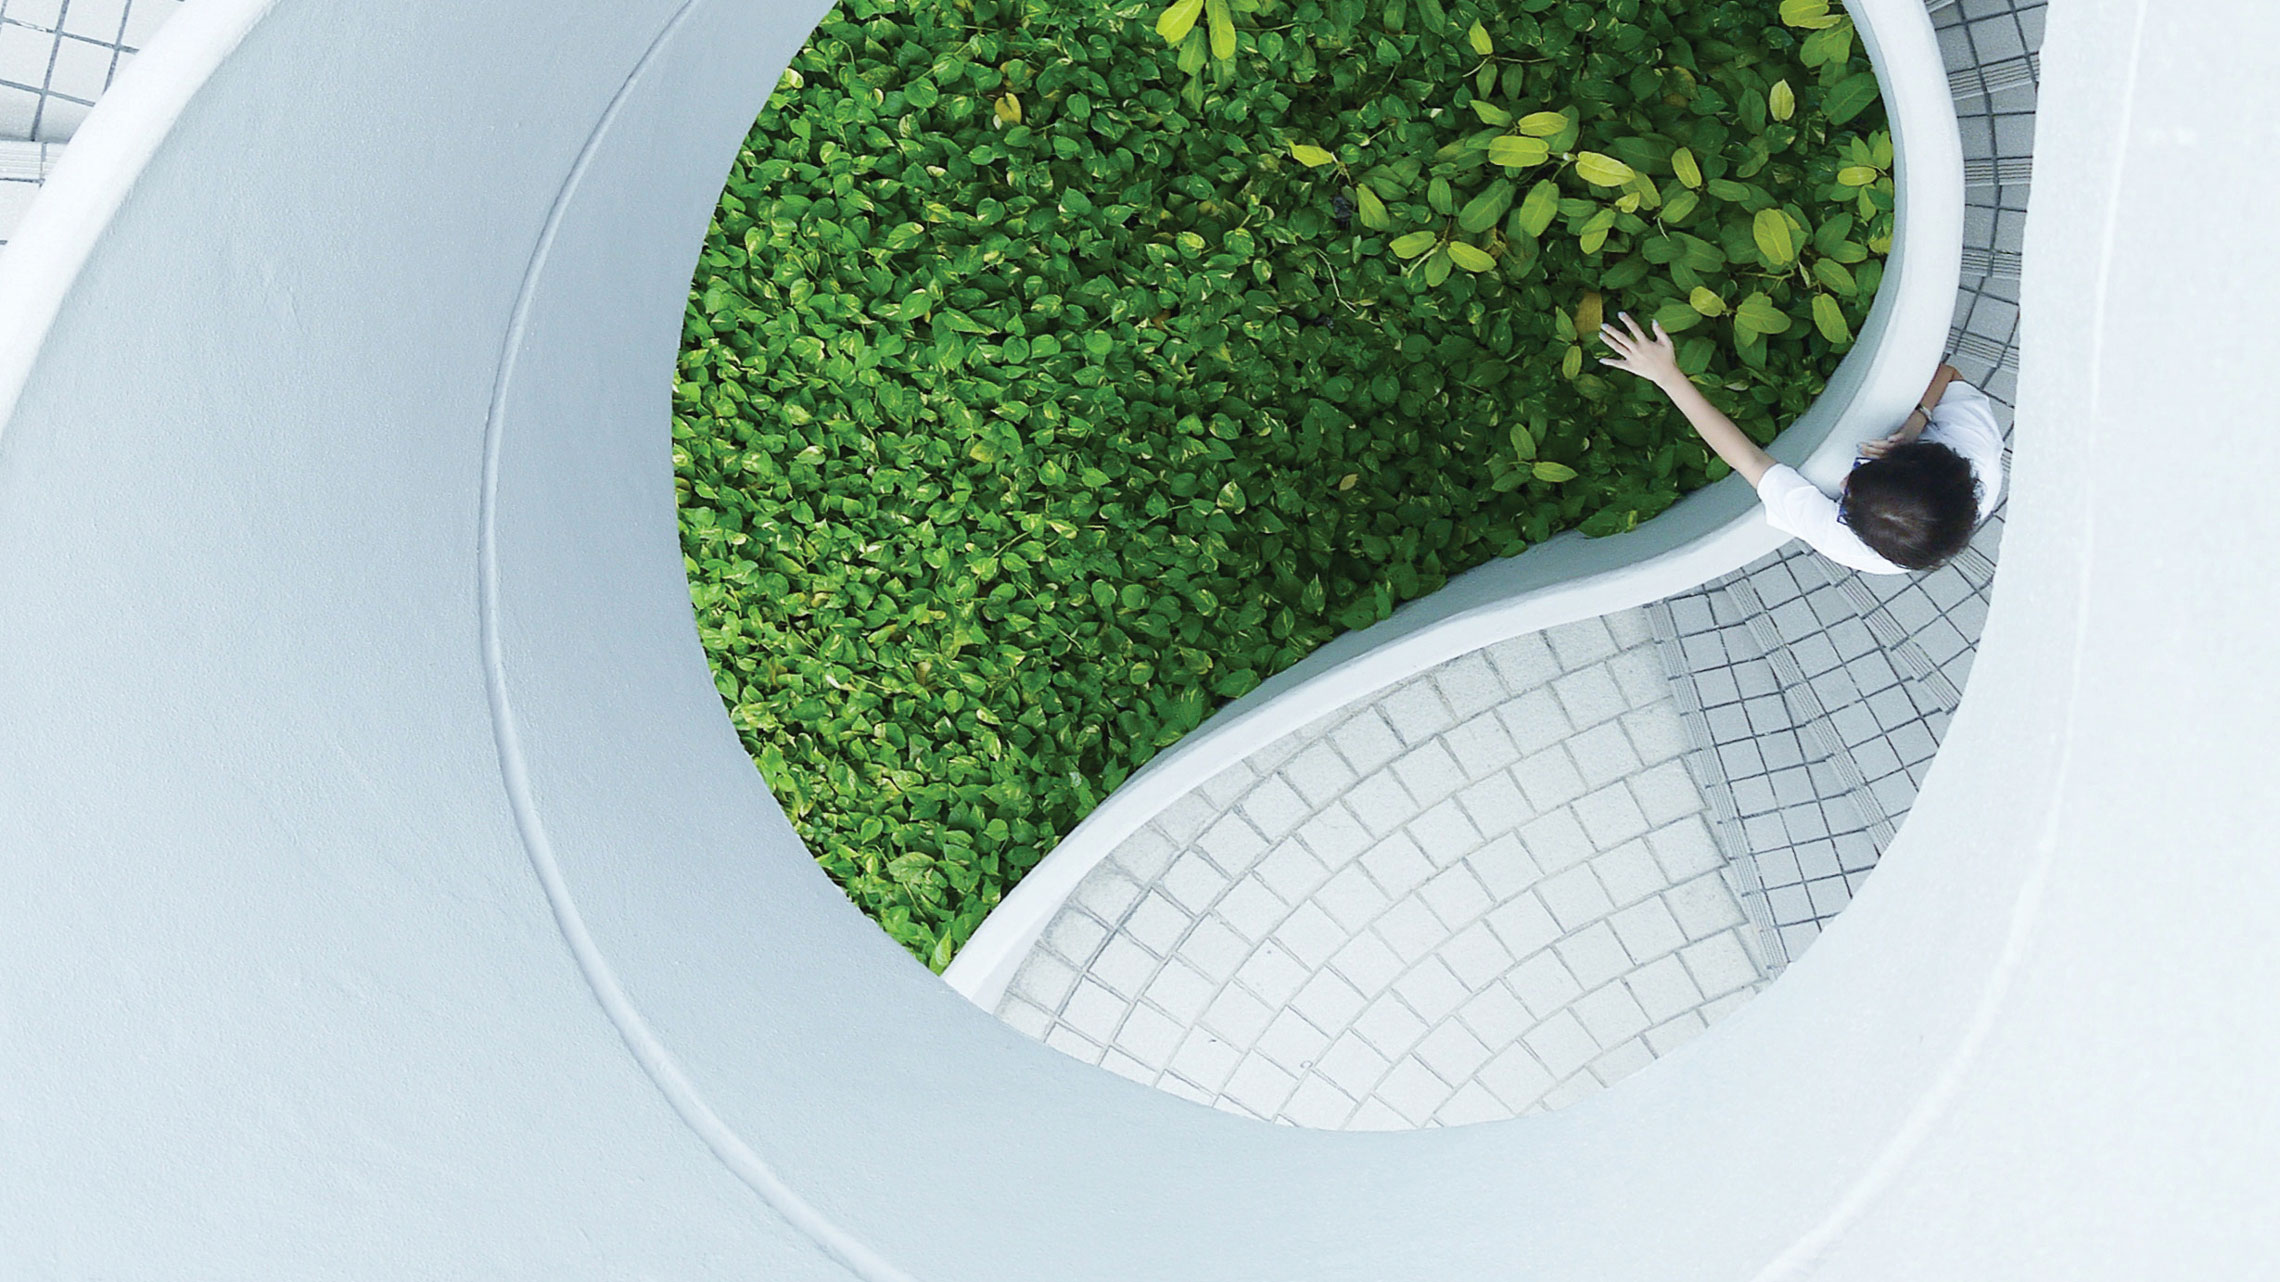 A sustainable business is a circular business